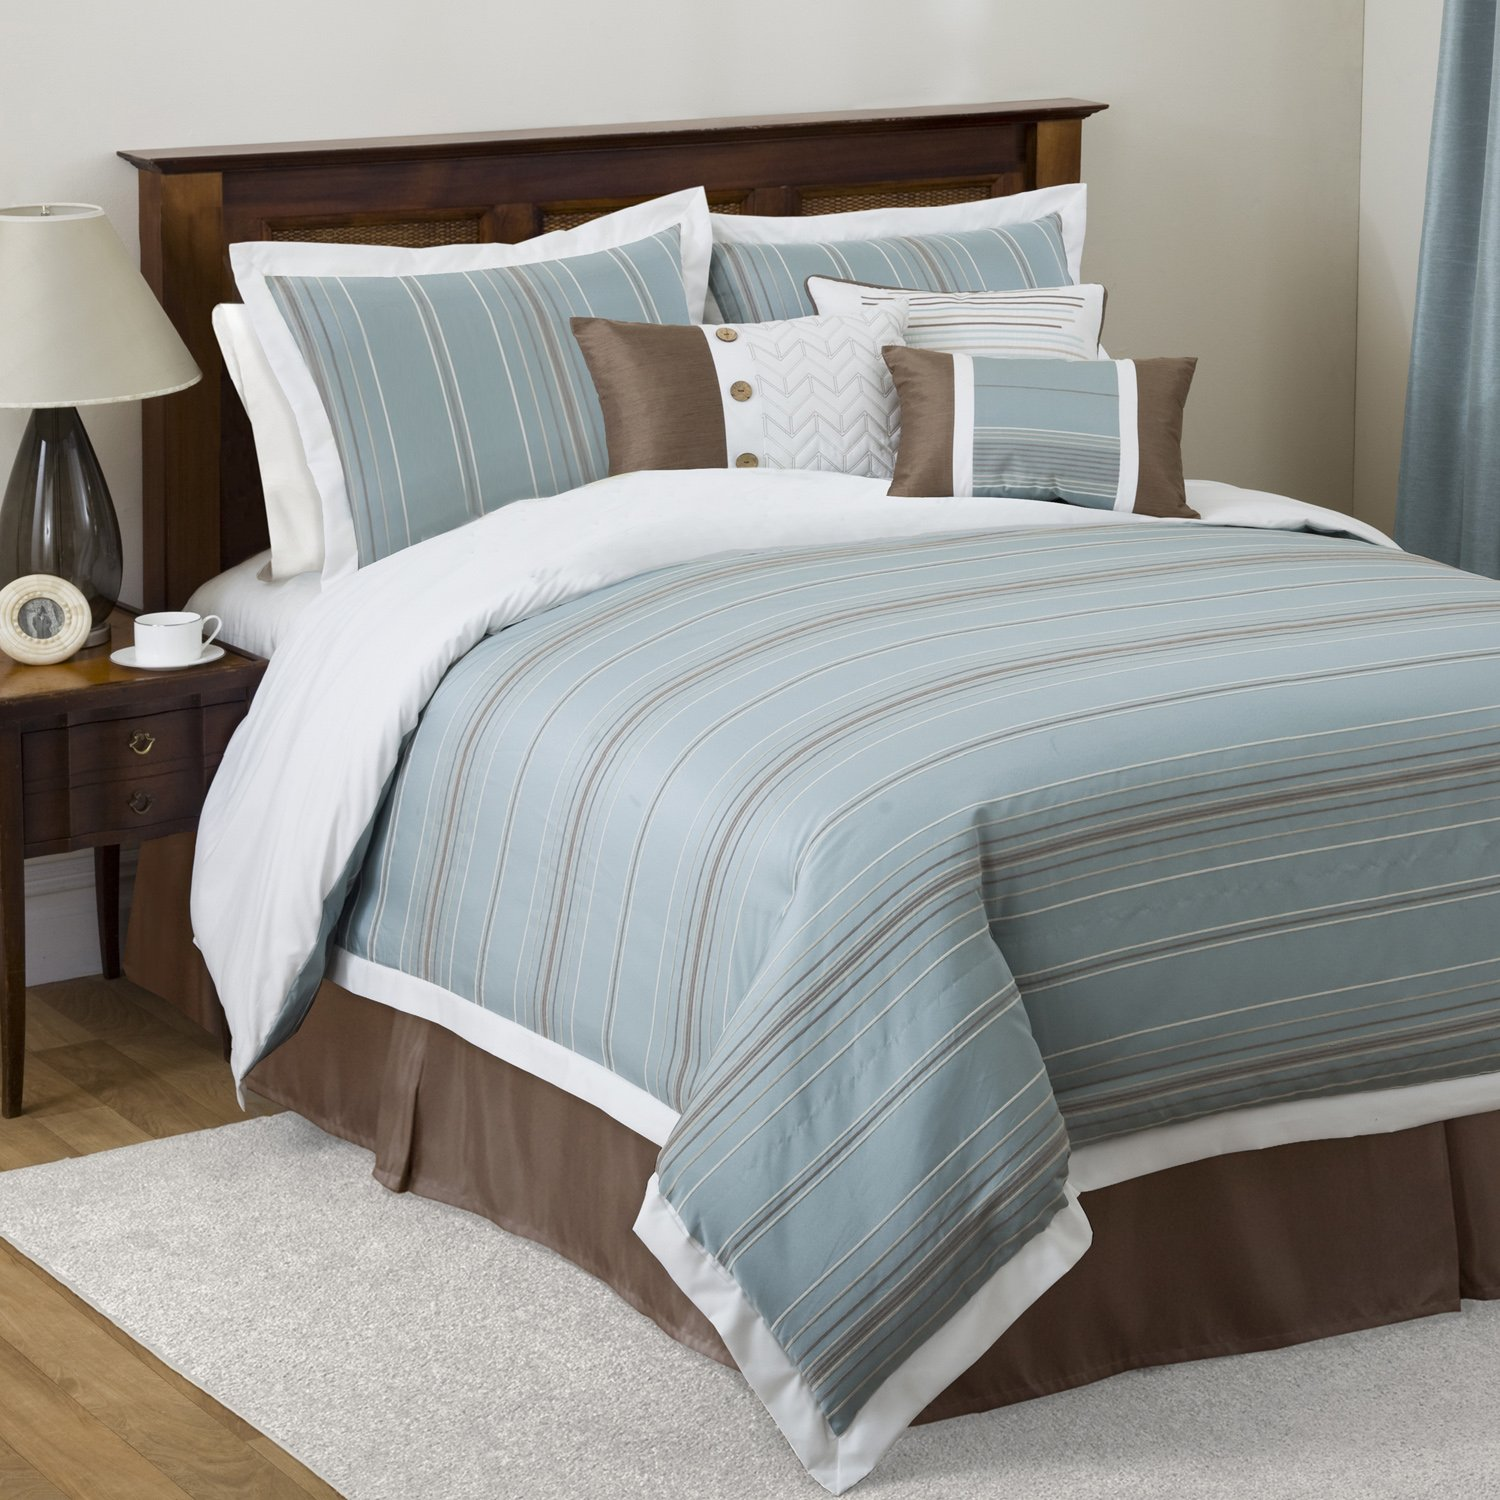 Blue and brown bed sets home decor gallery for Bedroom decor sets